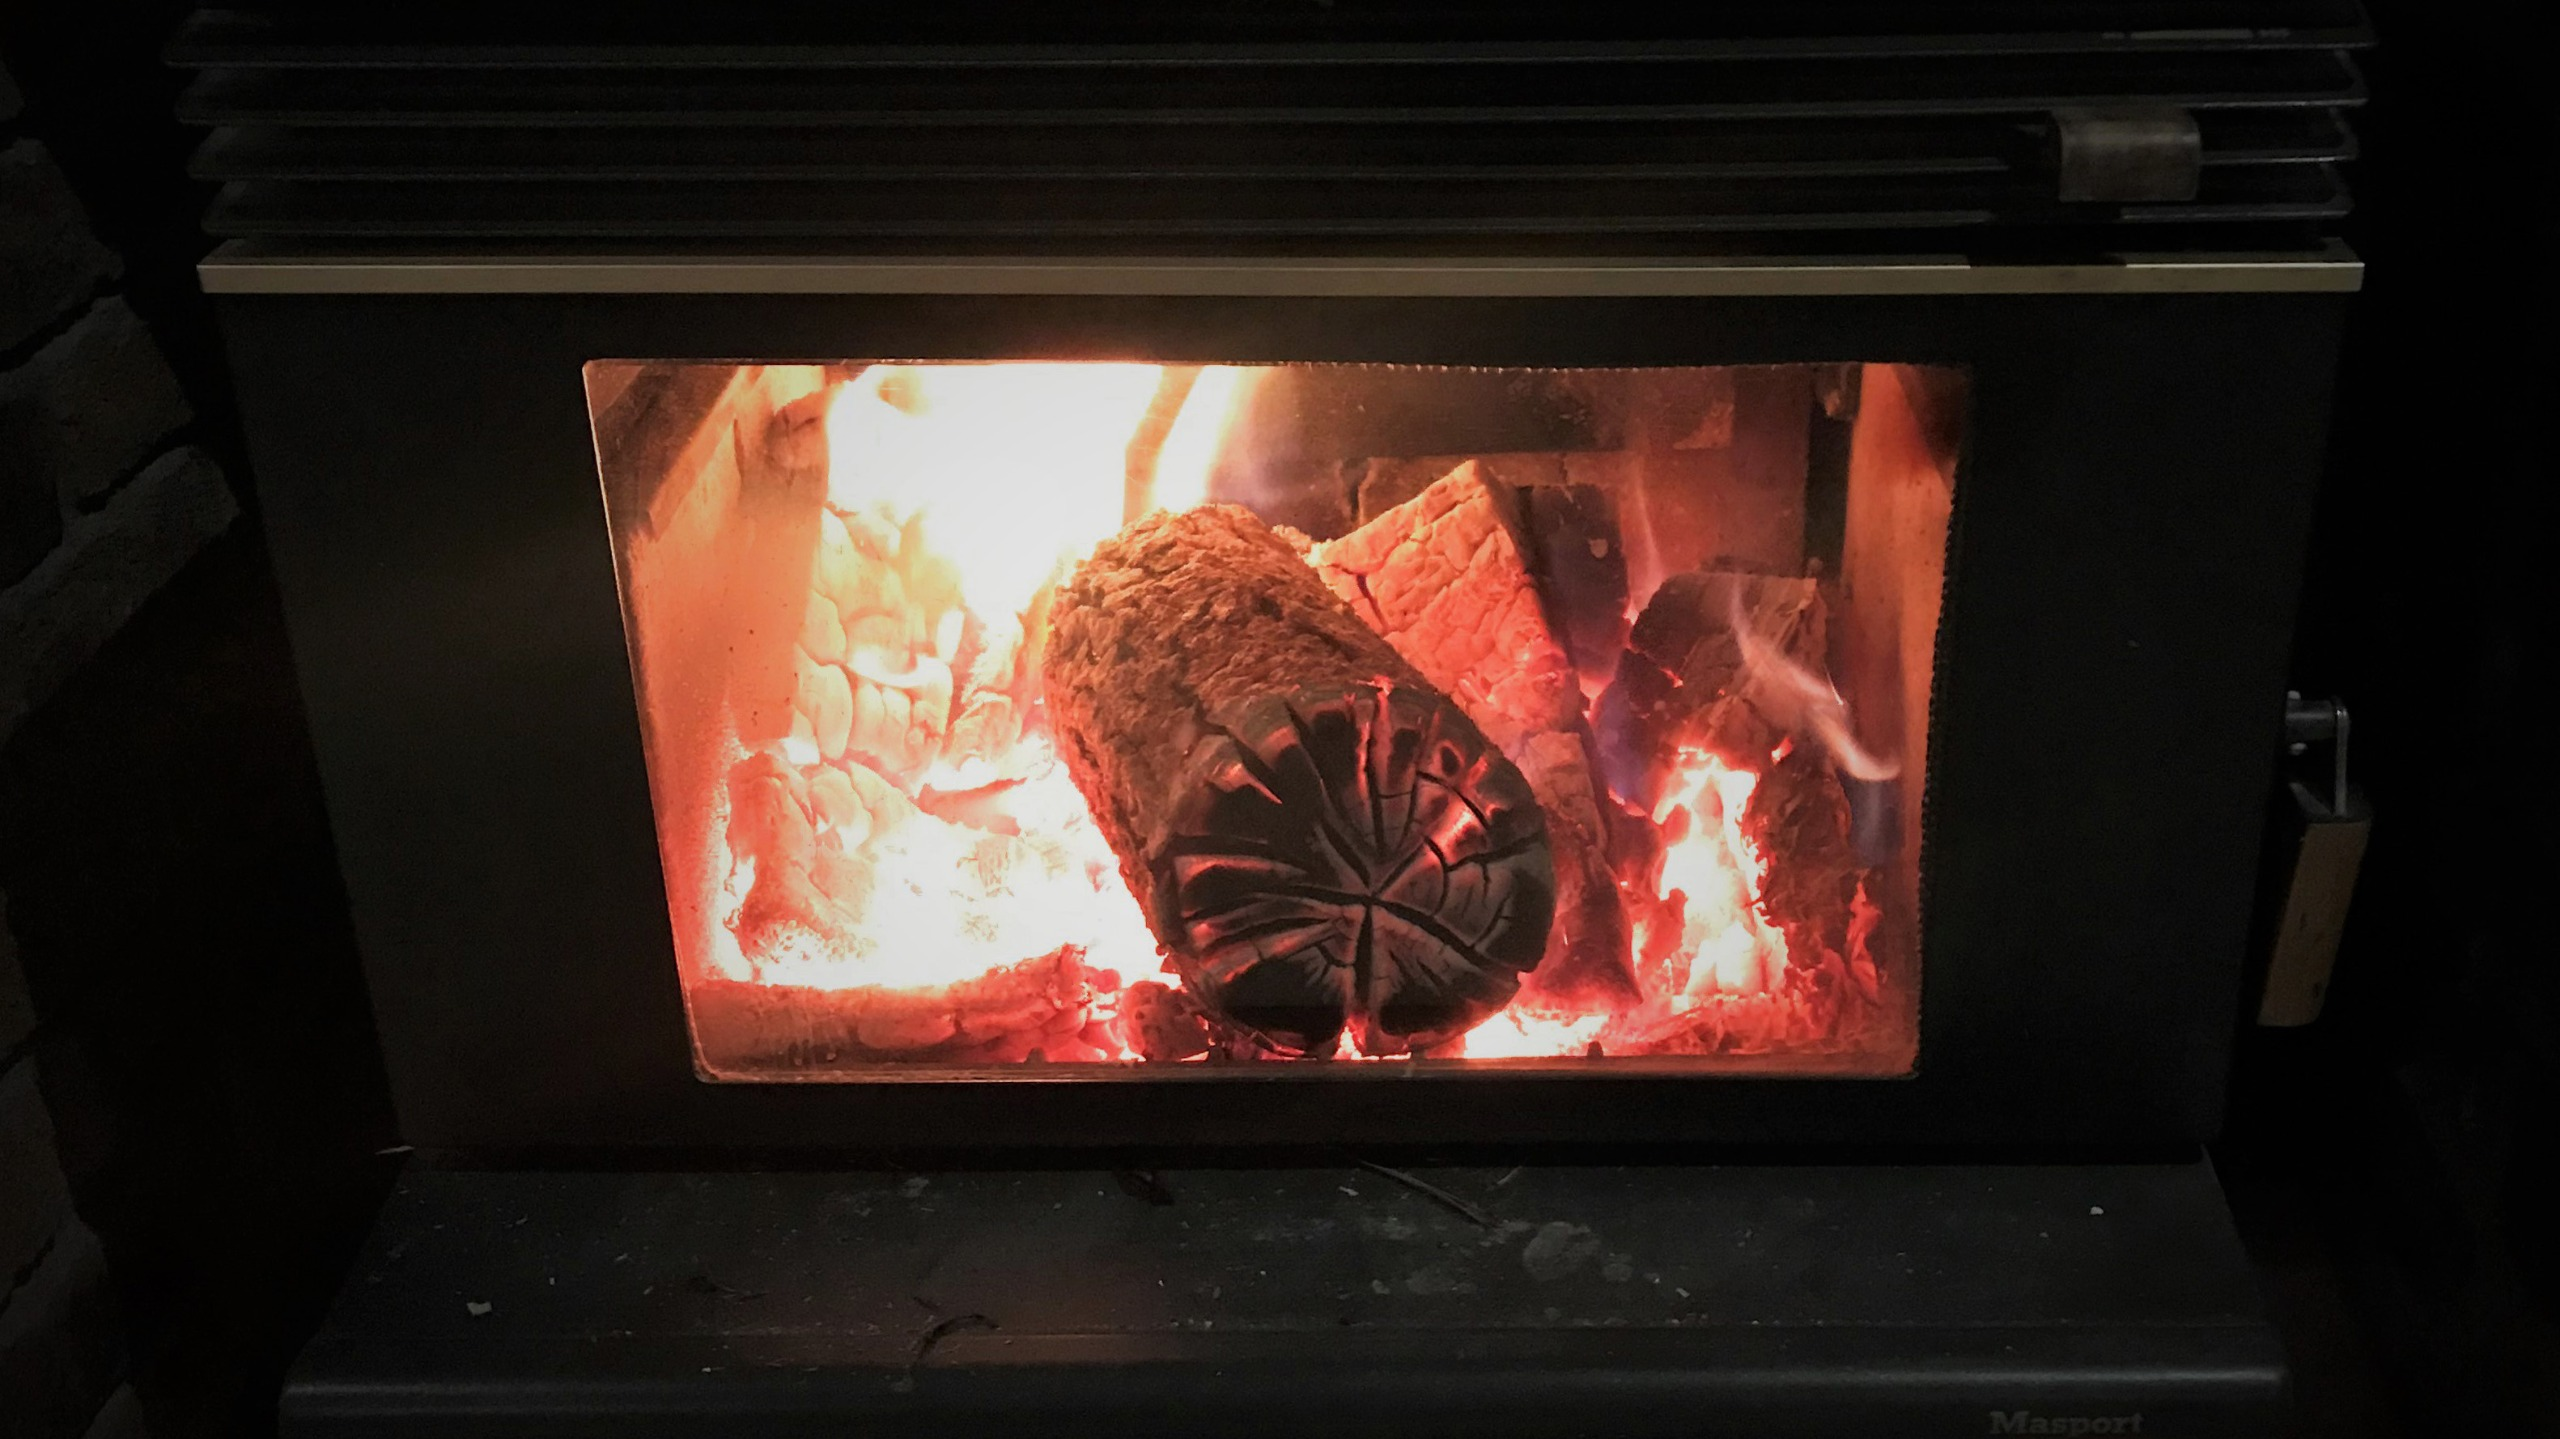 Close up of a log burner in use